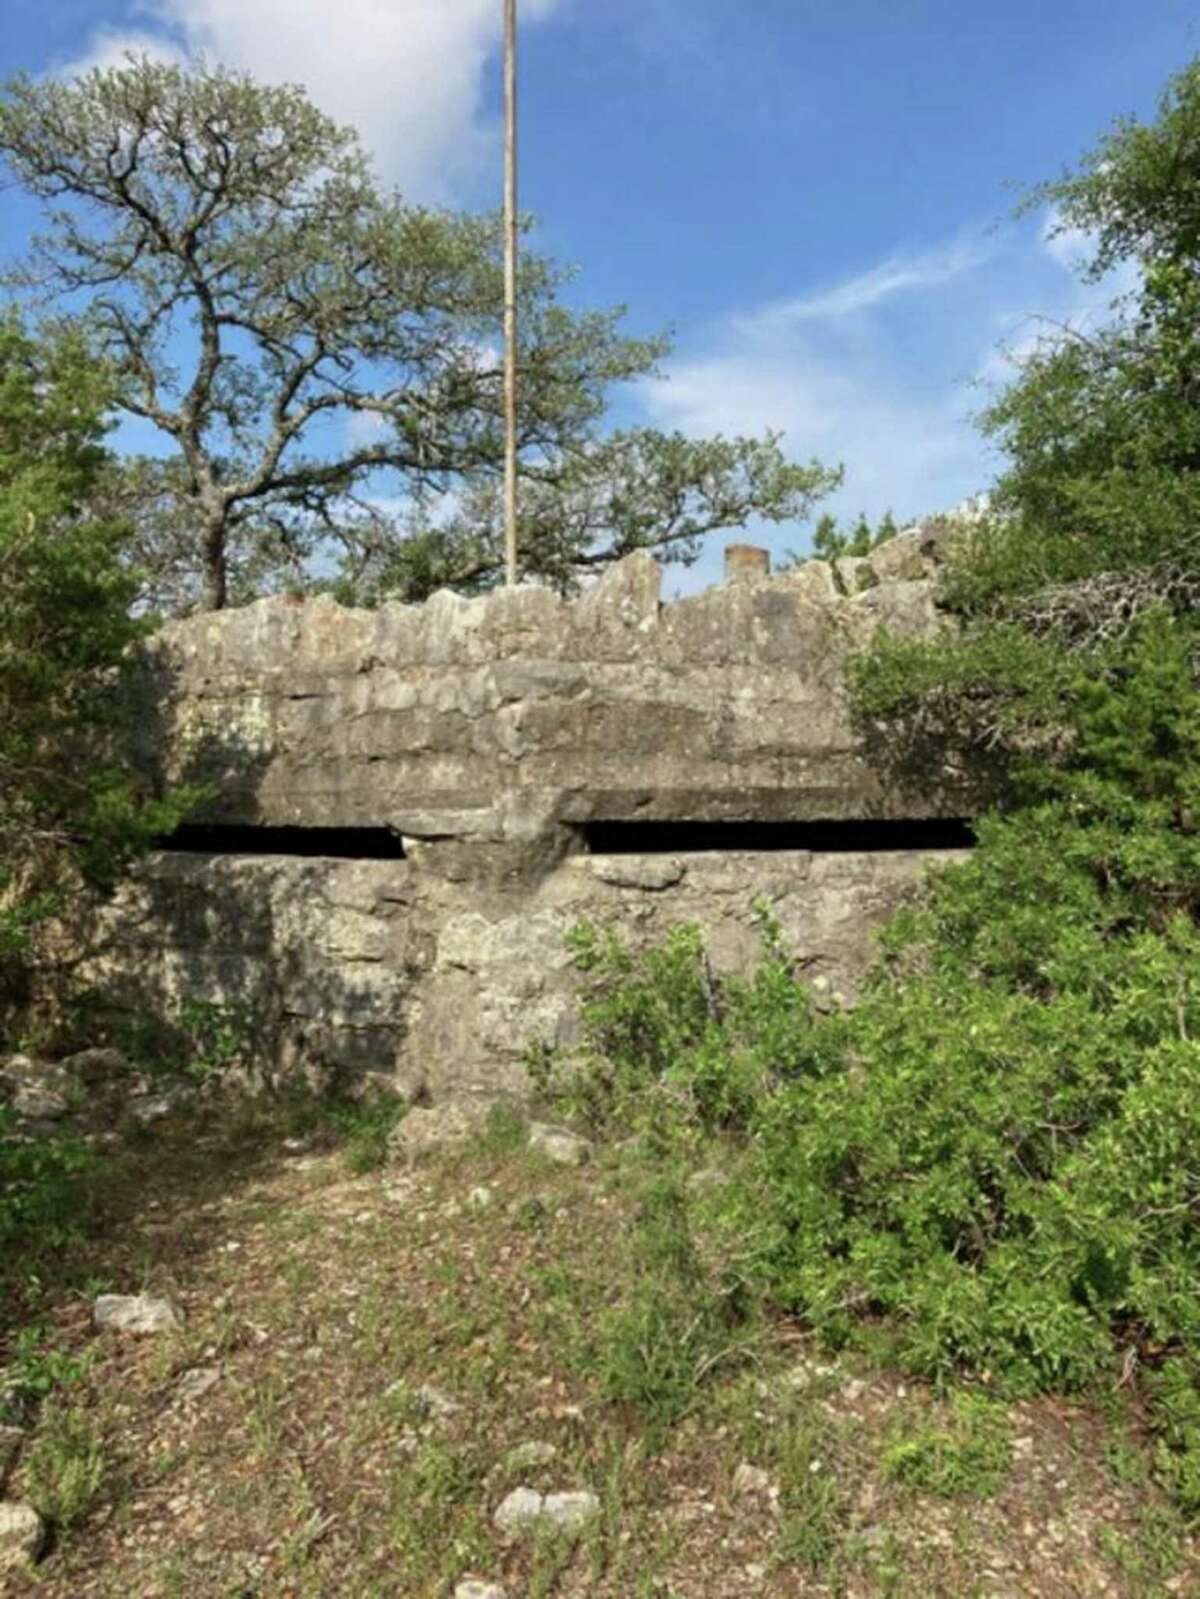 One of several, the bunker on top of Buck Hill at Camp Bullis was built for annual maneuvers between the world wars. An inscription dedicates it to the Second Field Artillery Brigade, one of the units that engaged in